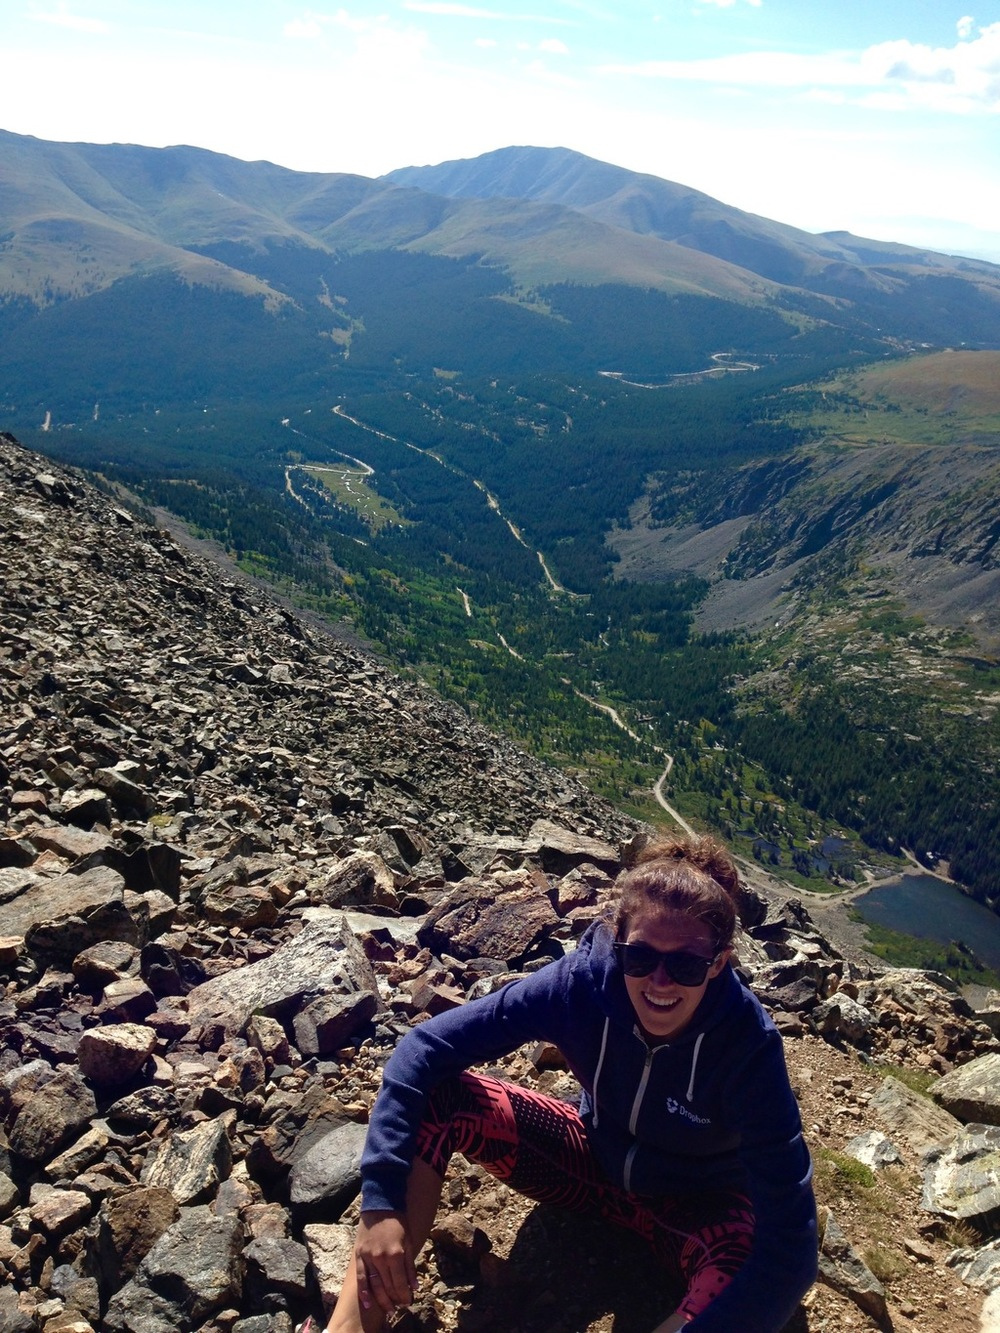 Breckenridge Colorado Fourteener Quandary